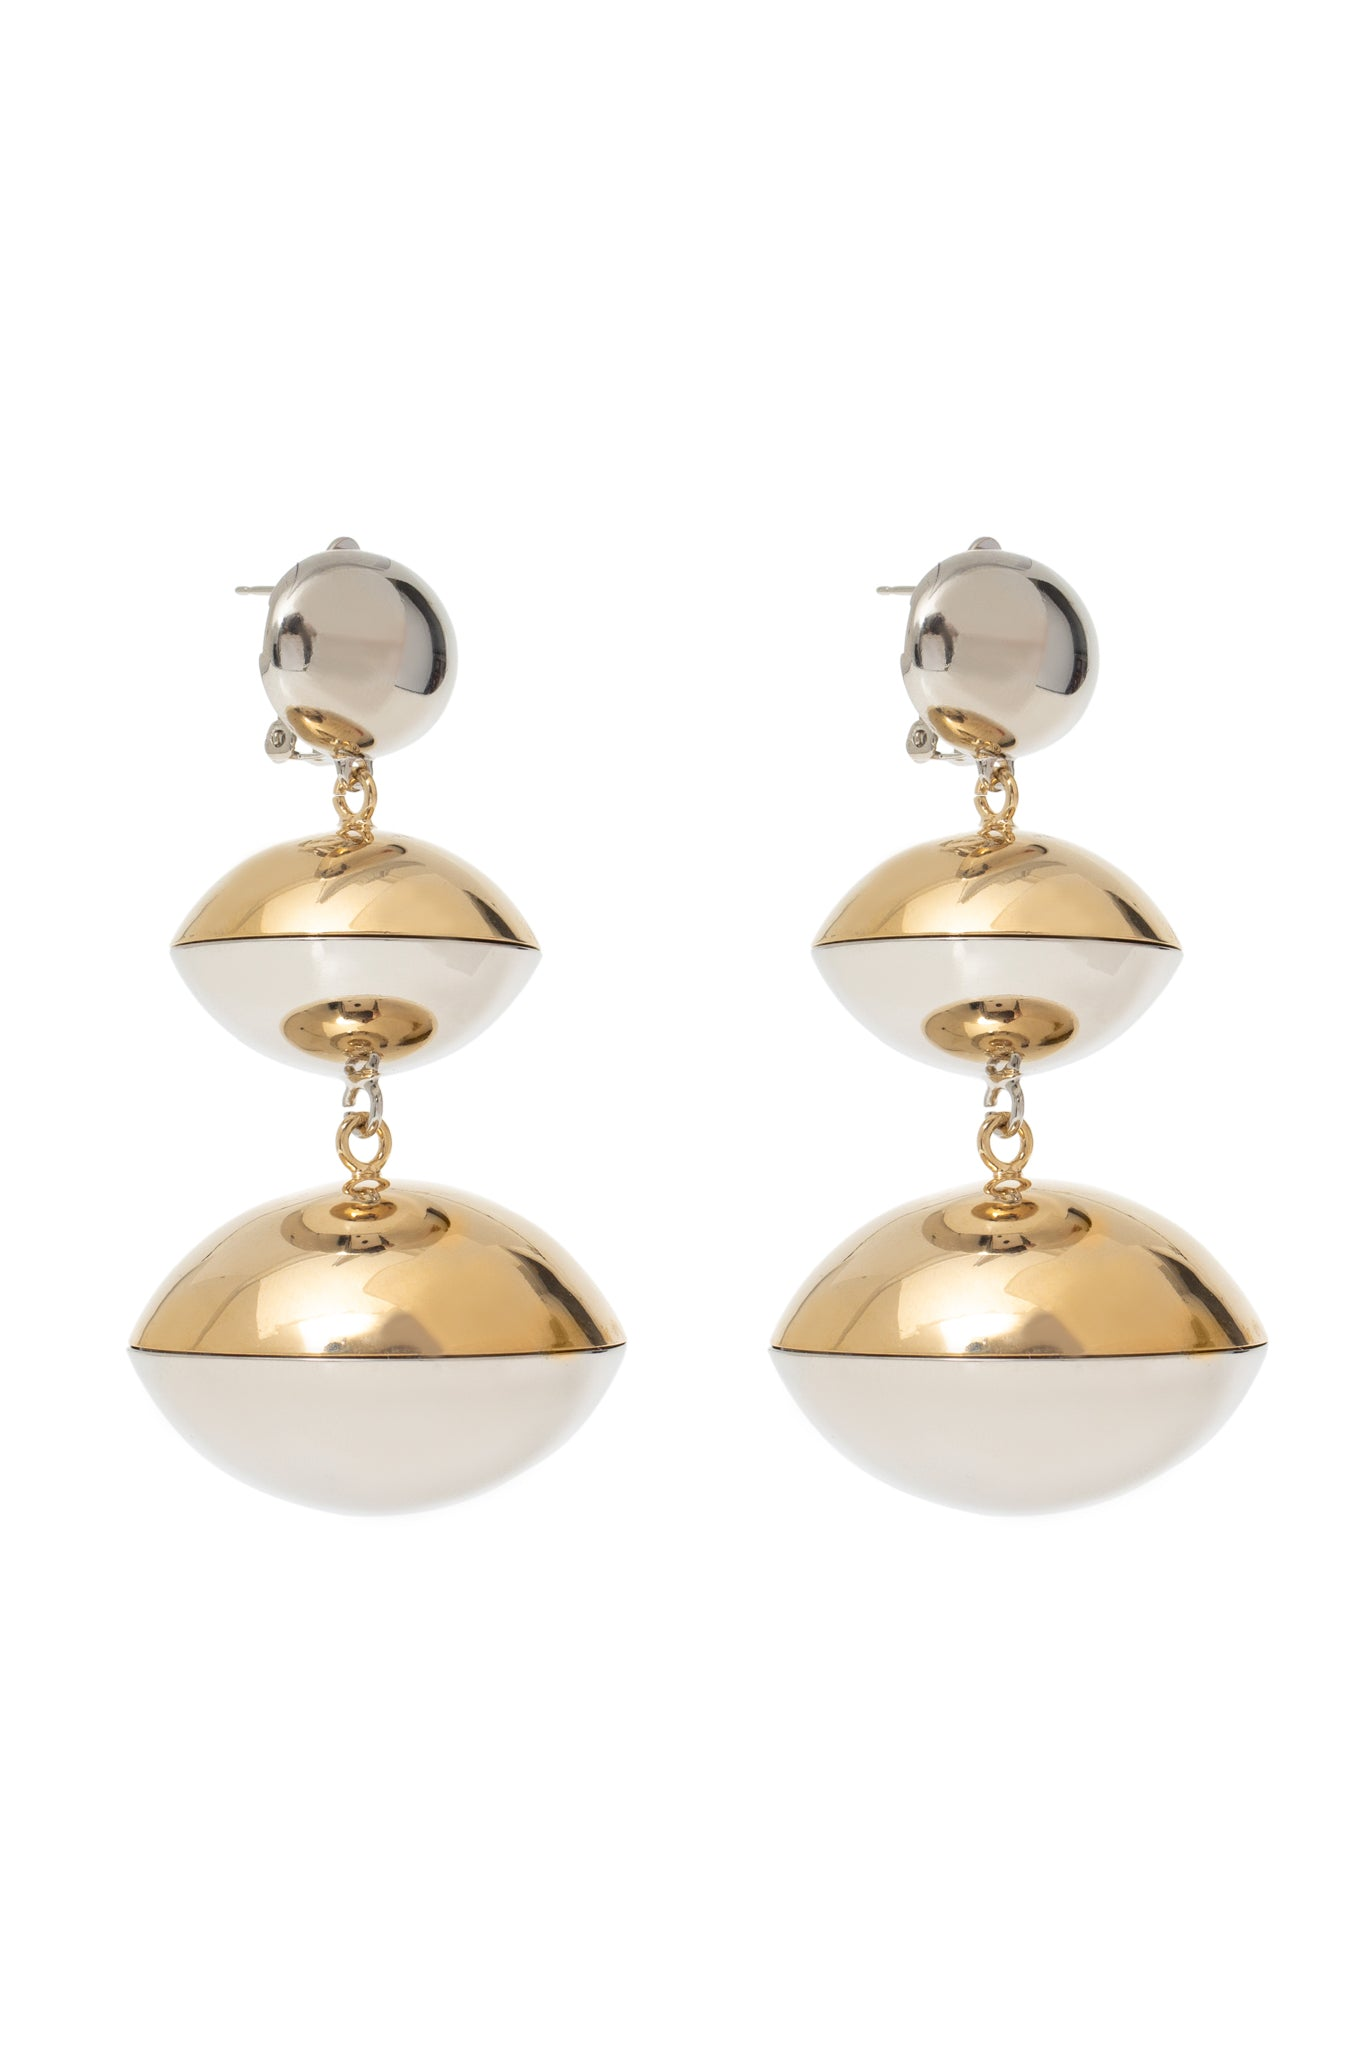 GOLD/SILVER 3 BALL EARRINGS